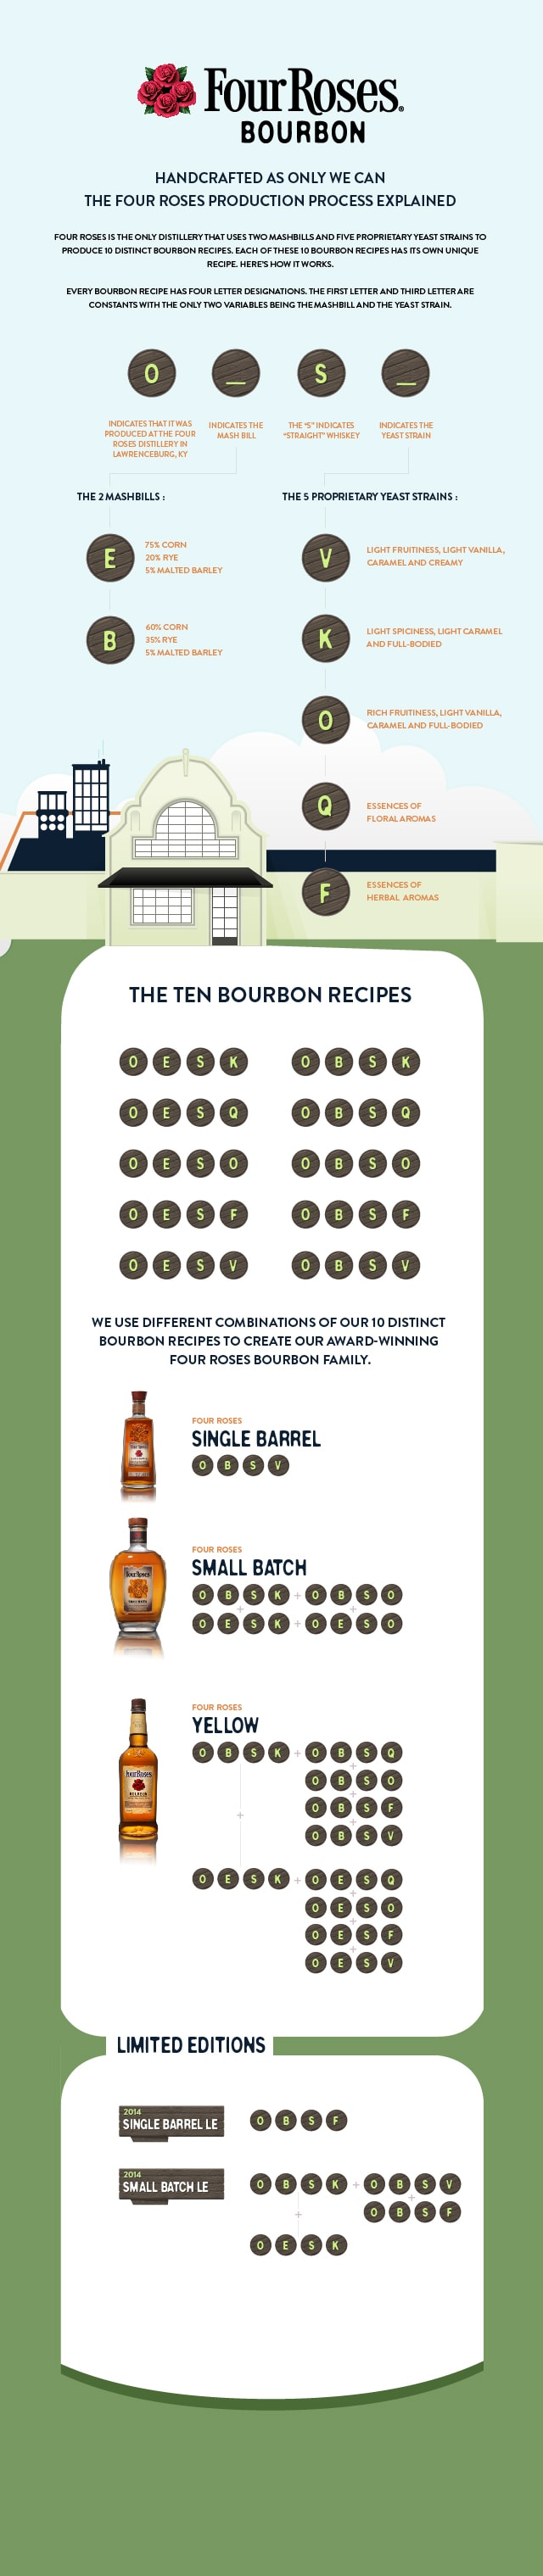 Four-Roses-Bourbon-Infographic_FINAL (3)_2104 Limited Editions